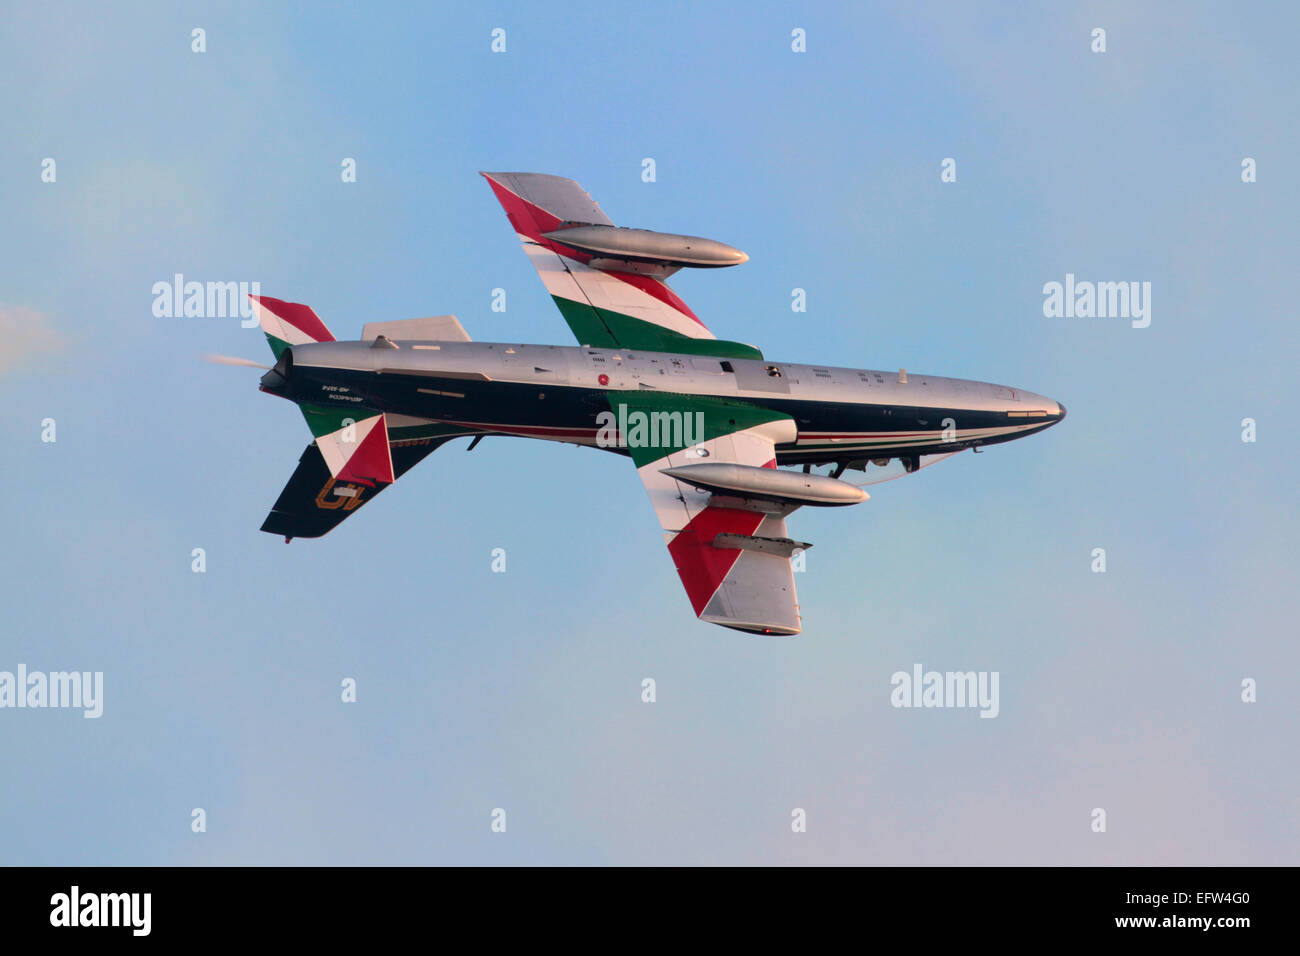 Military aviation. Aermacchi MB-339 of the Frecce Tricolori aerobatic team flying inverted during a display Stock Photo